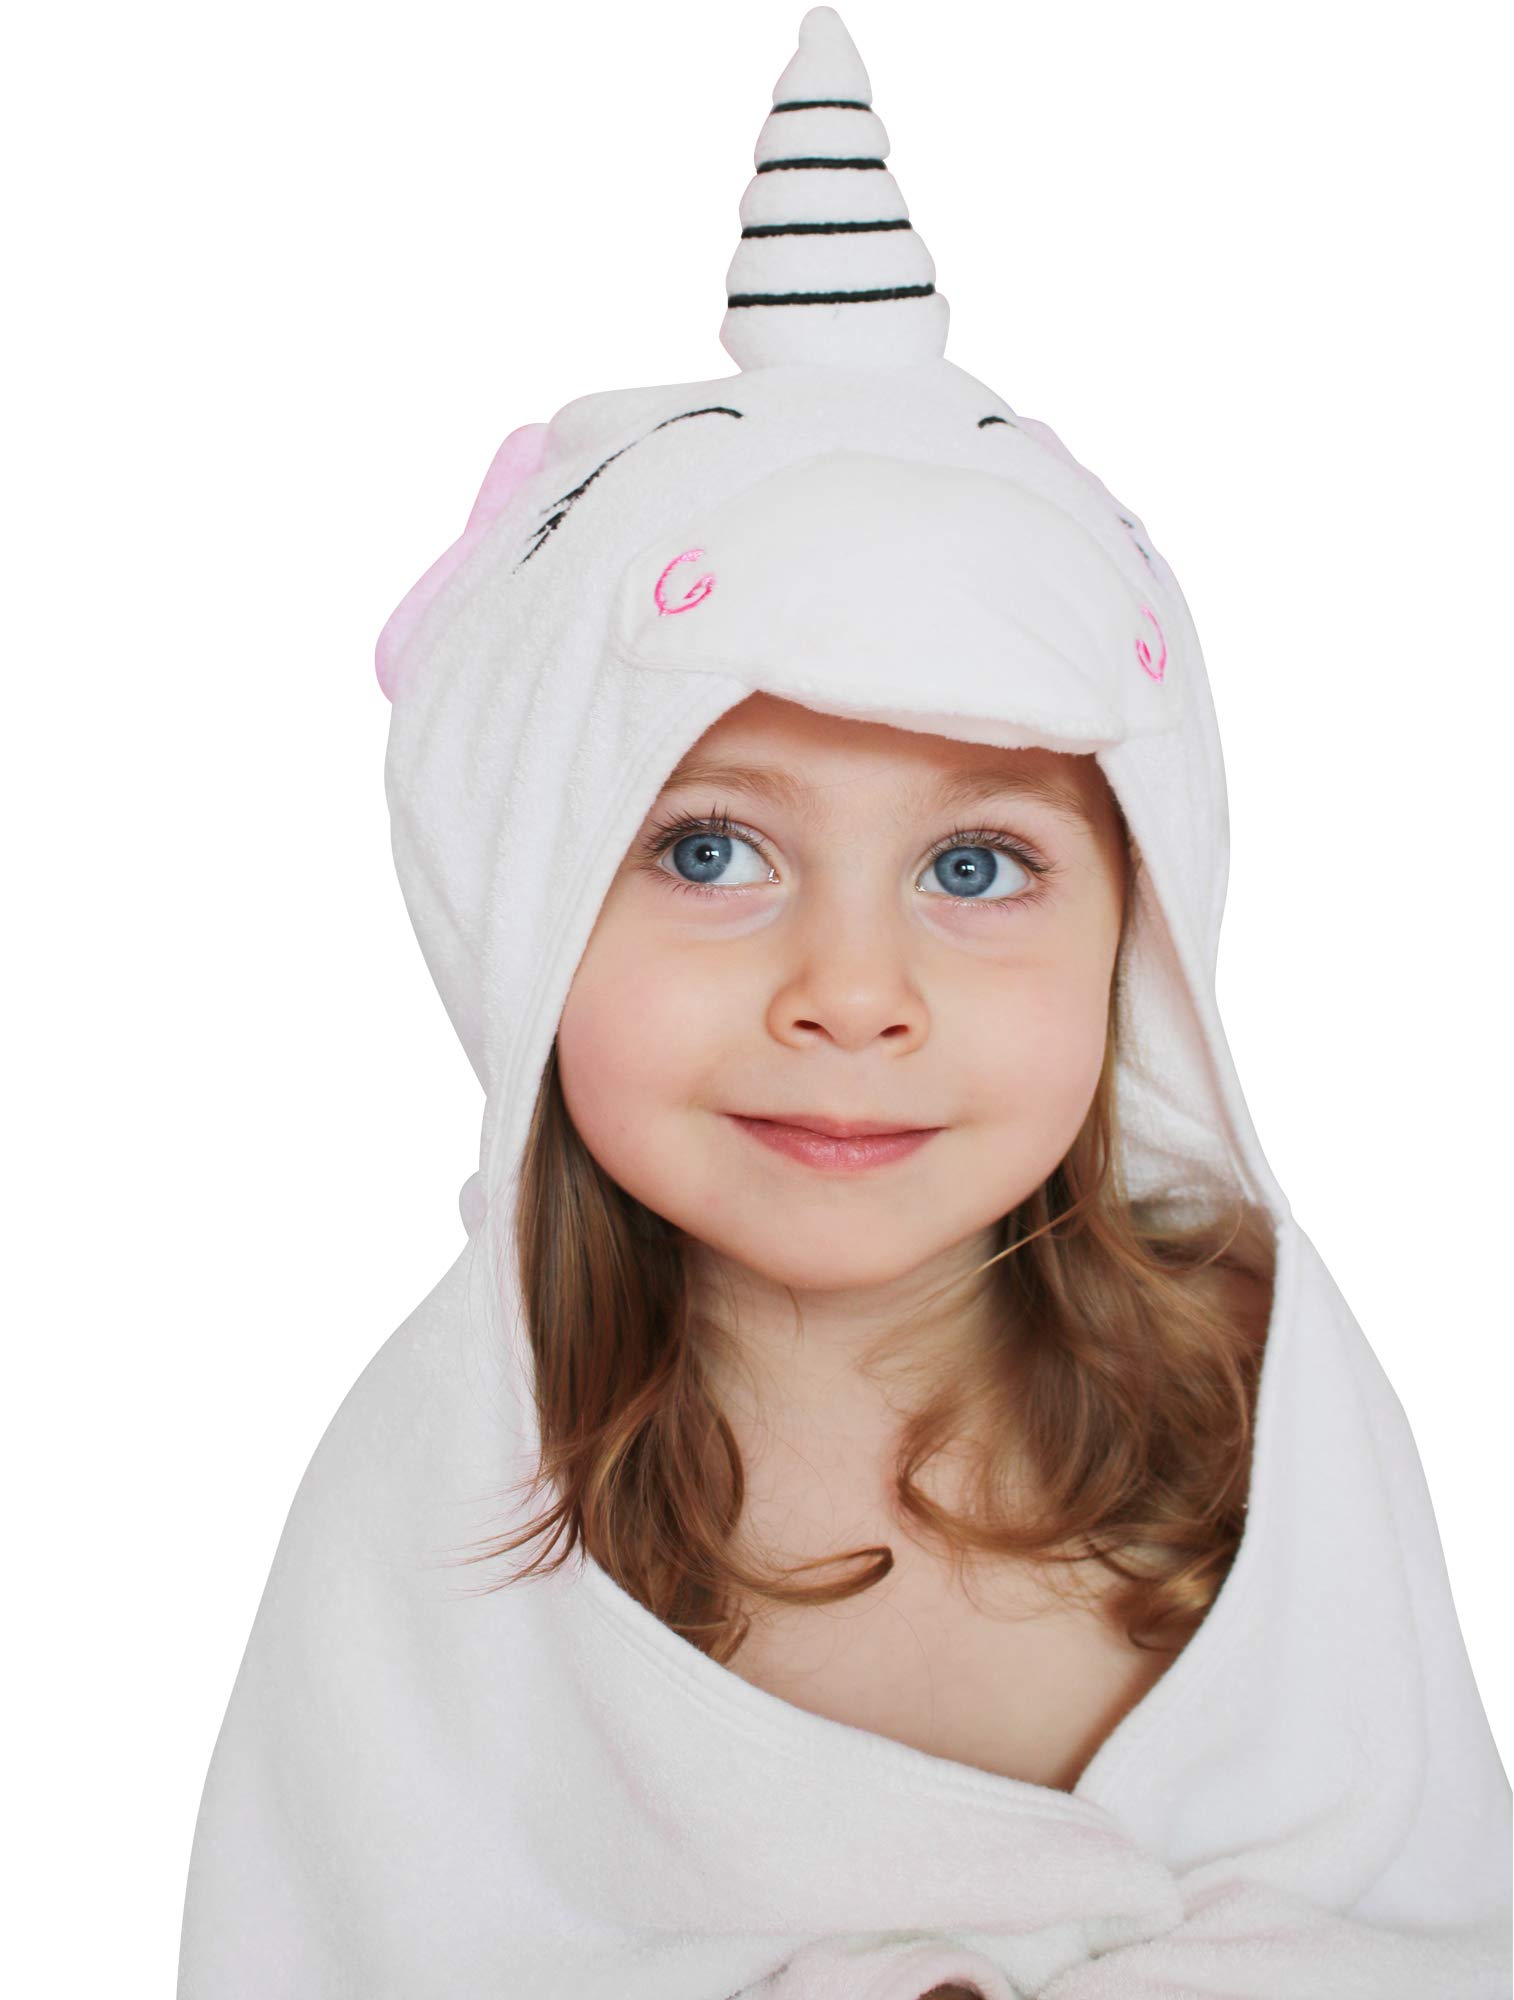 Unicorn Baby Hooded Towel and Washcloth Set - Premium Quality Extra Large 100% Organic Bamboo Cotton - Infant Baby Toddler Children's Girls - Great Baby Shower Gift - Soft Antibacterial 500 GSM by Smart New Mommy